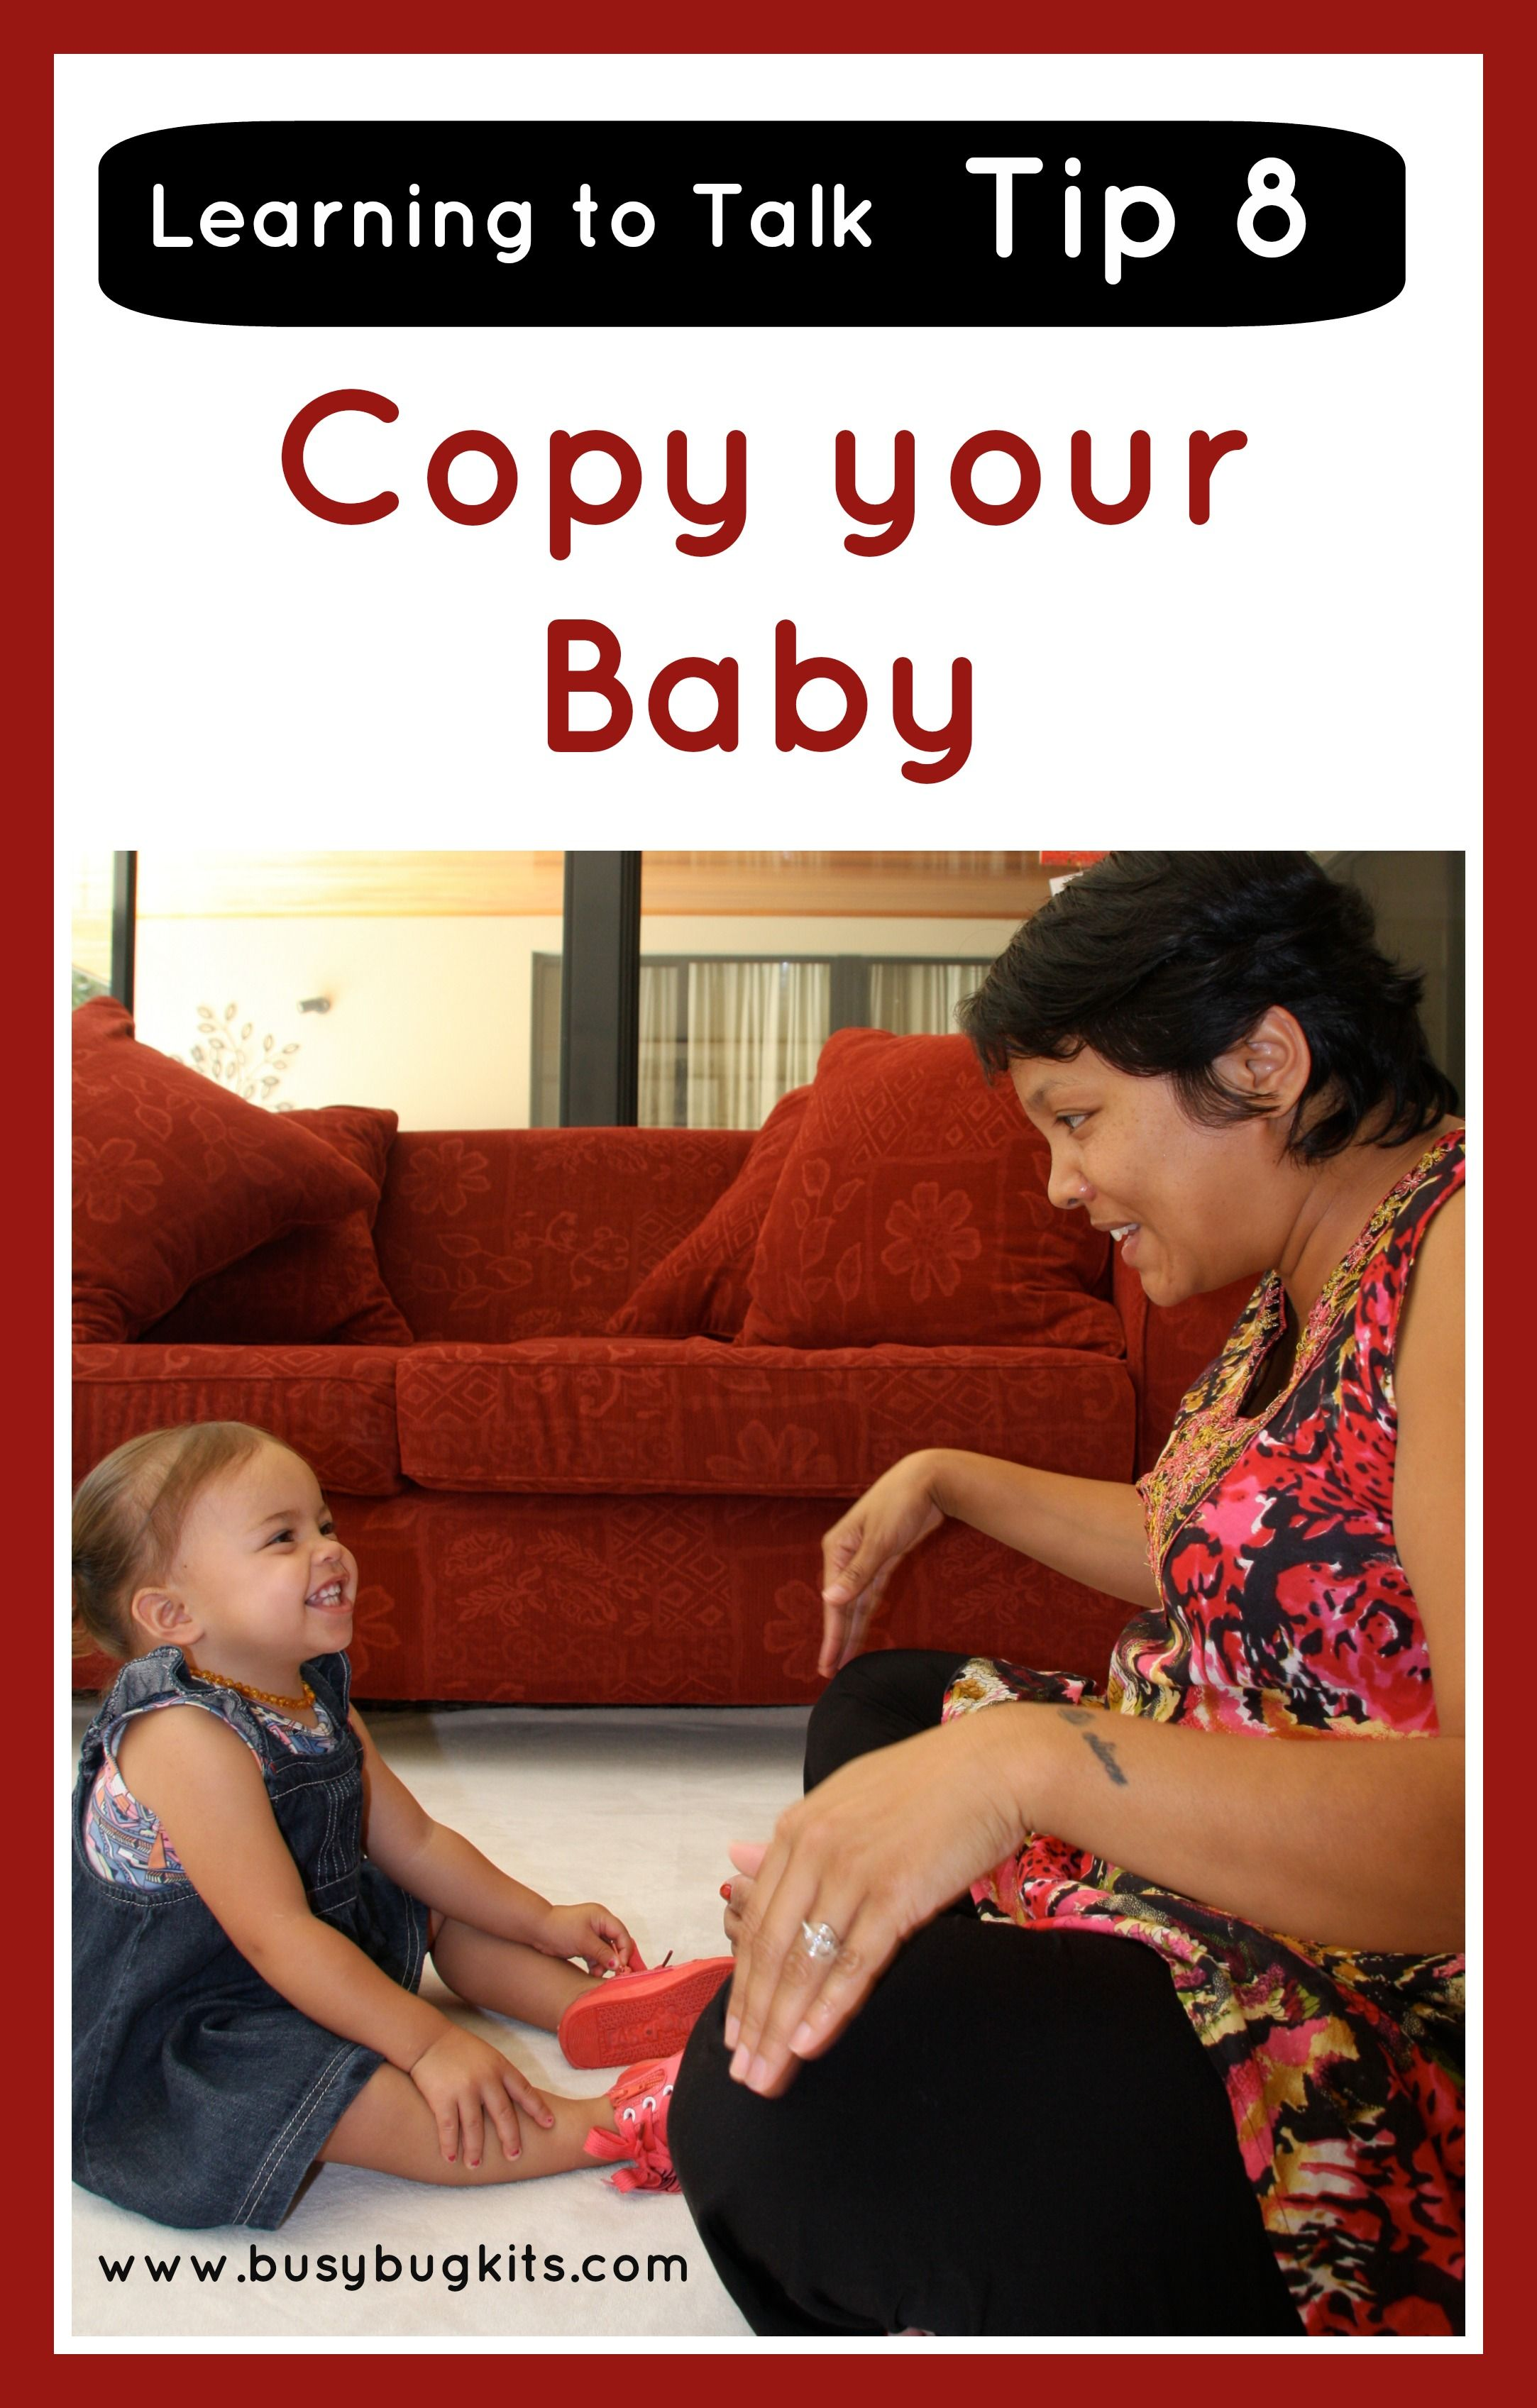 Copy your baby.  Some info about how and why to copy your baby for language development.  Youtube clips included.